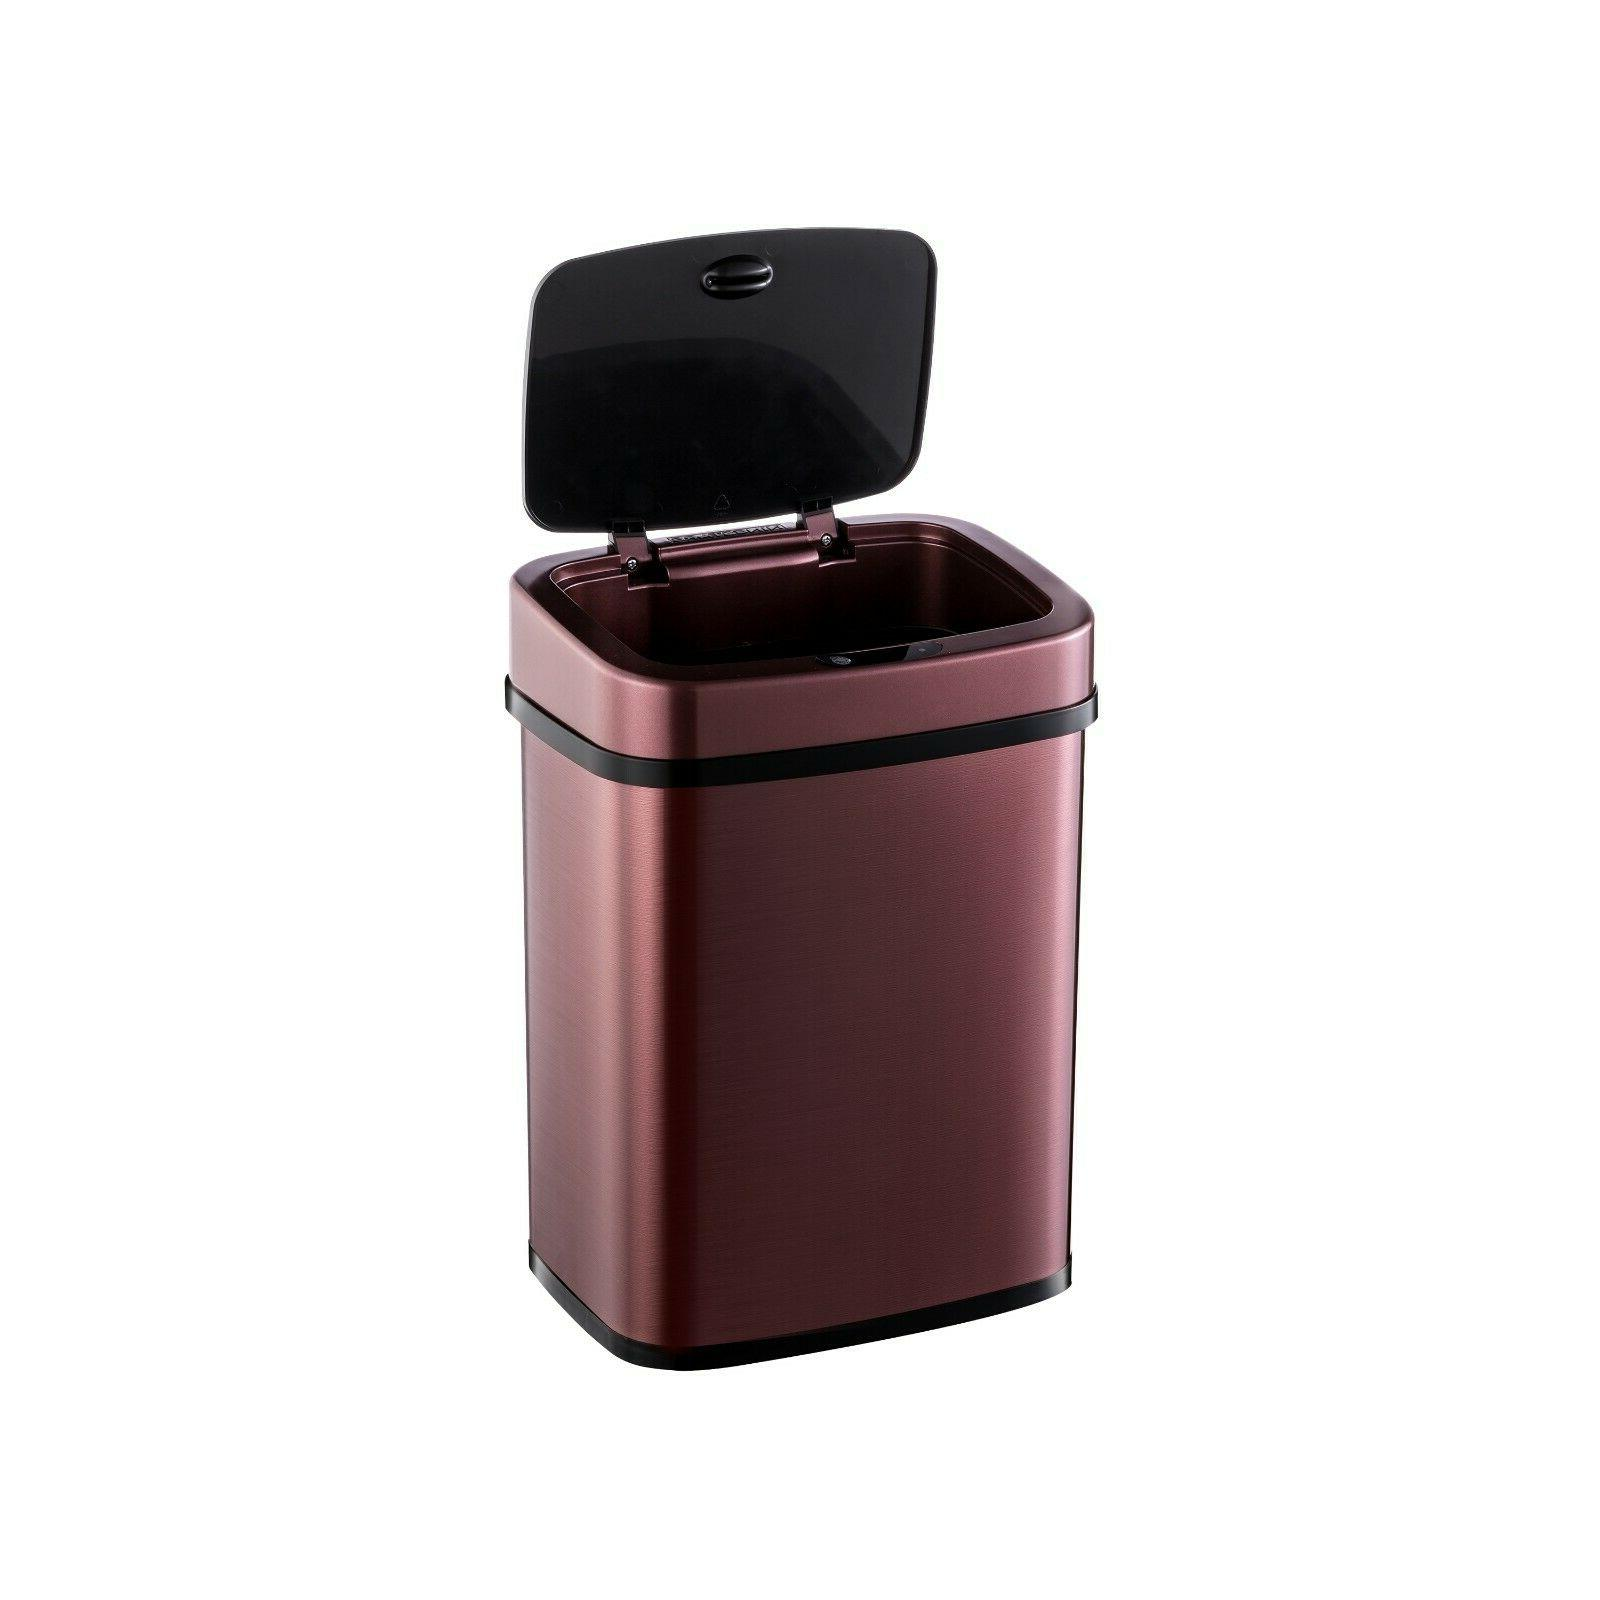 Ninestars Bedroom Automatic Touchless Infrared Motion Trash